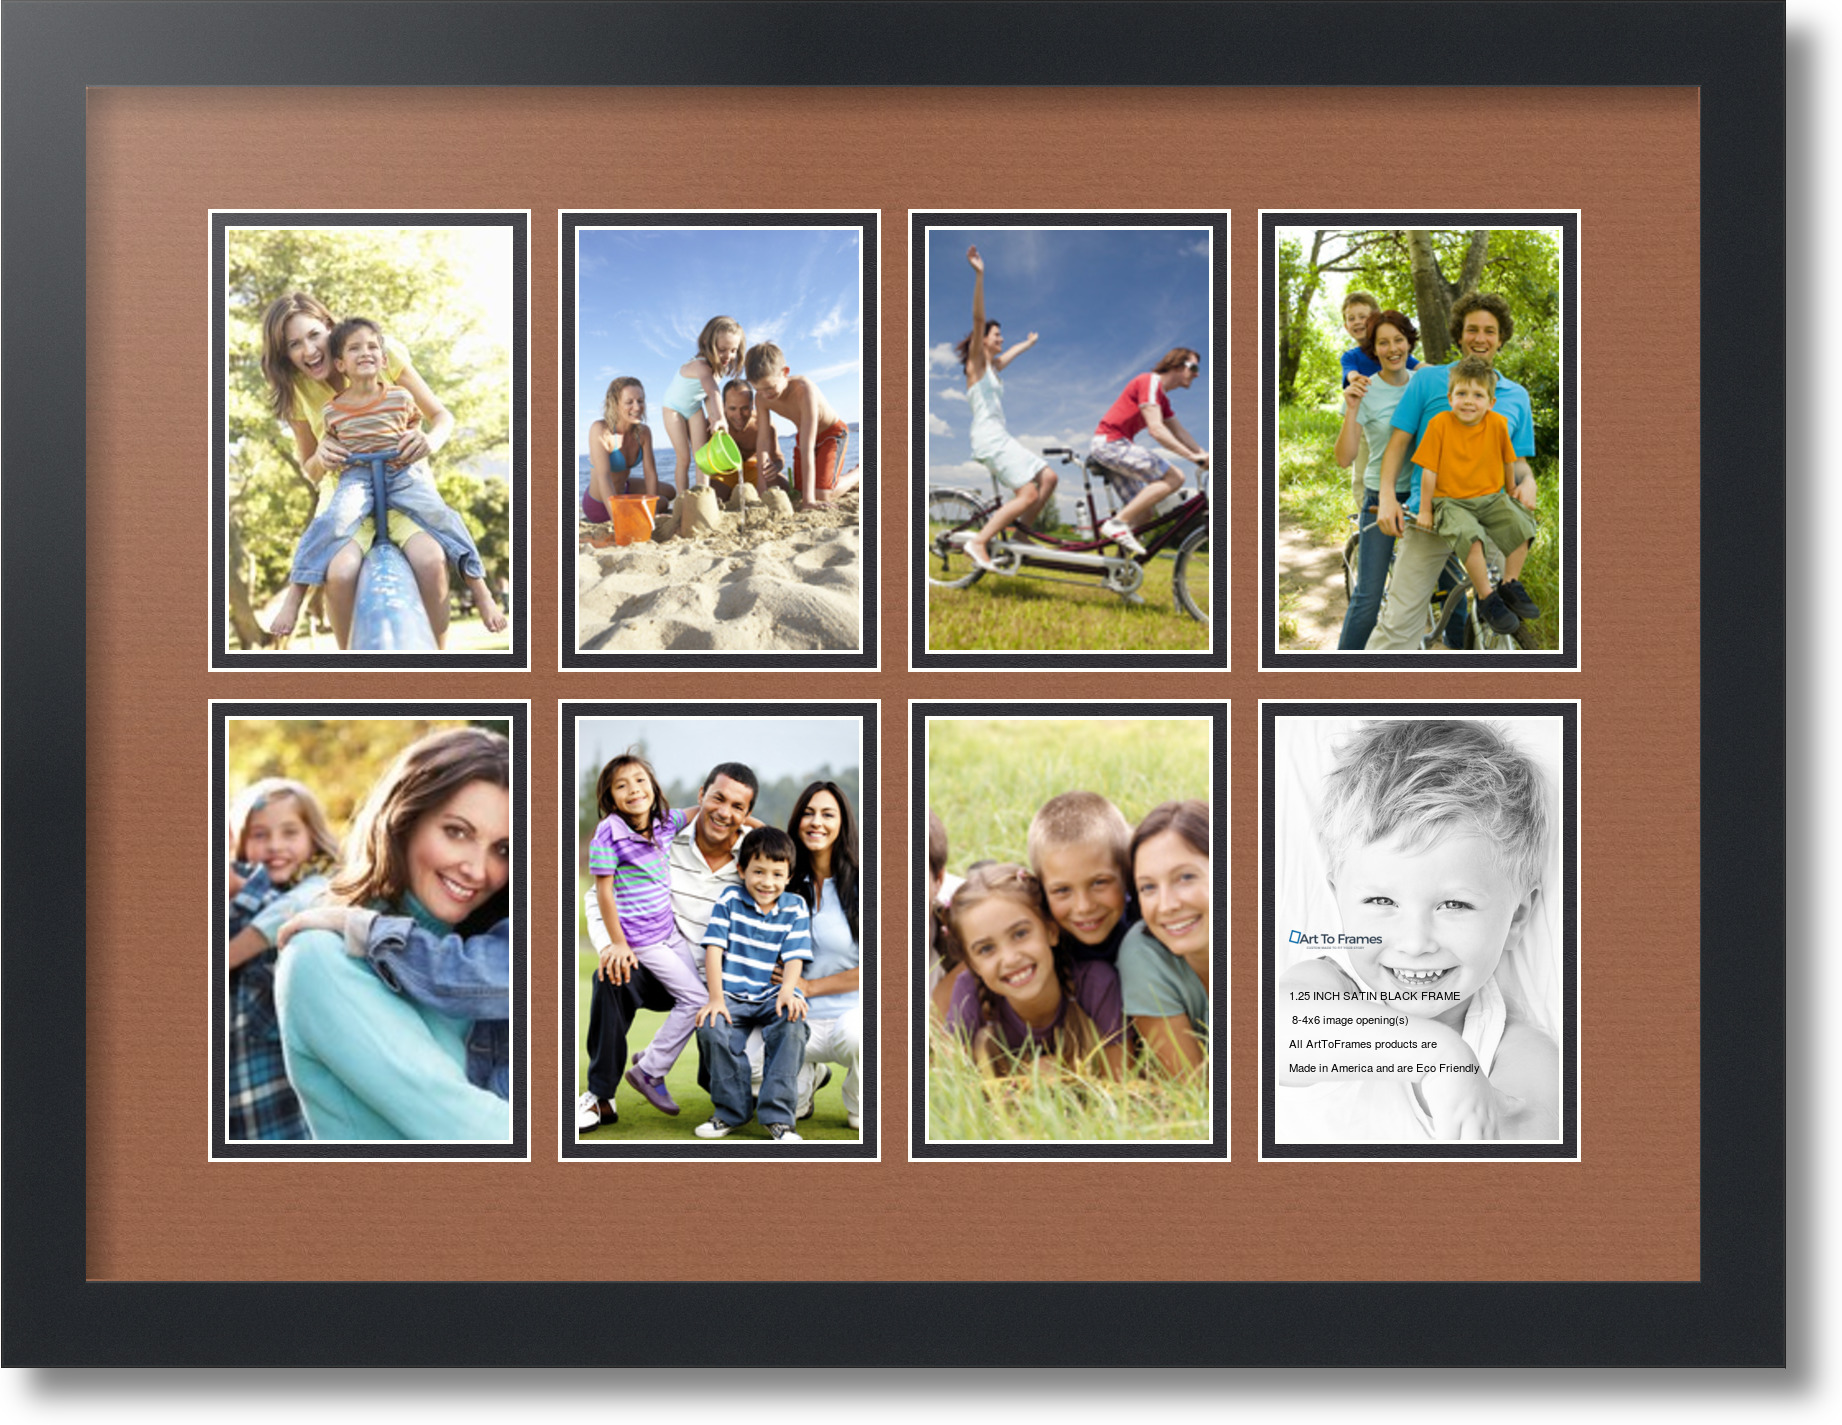 4 By 6 Collage Frames: Satin Black Collage Picture Frame With 8